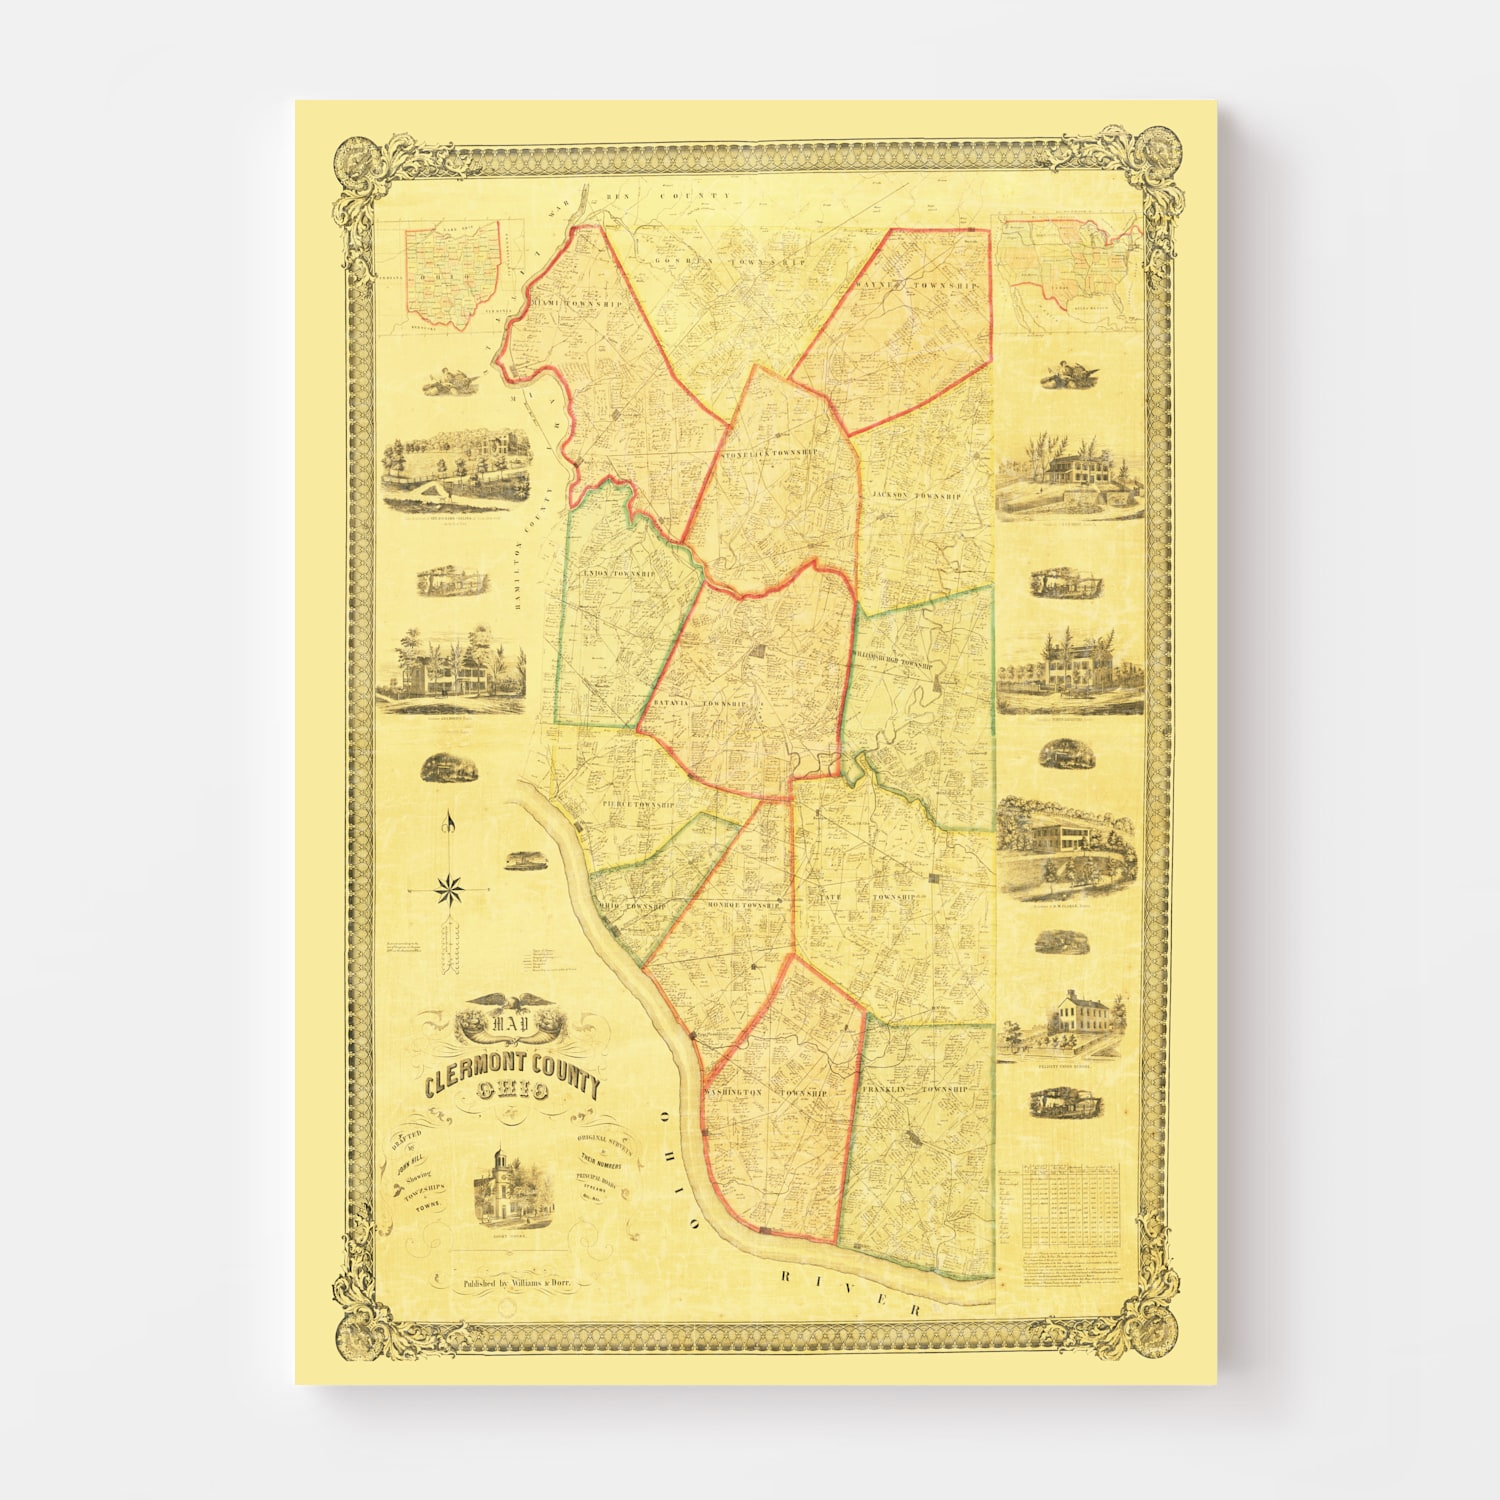 Vintage Map of Clermont County, Ohio 1857